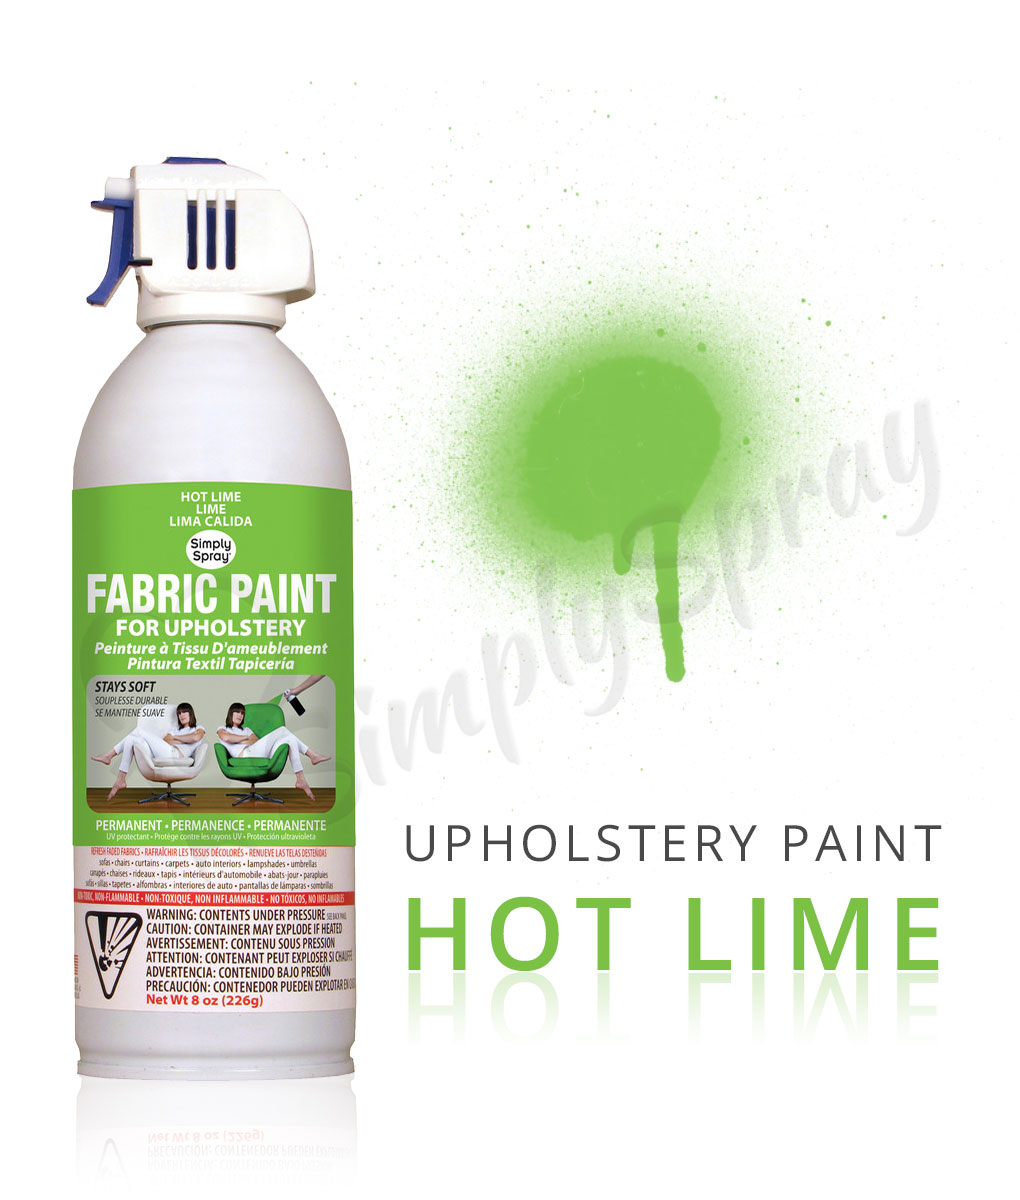 hot lime fabric dye spray paint quick easy effective. Black Bedroom Furniture Sets. Home Design Ideas